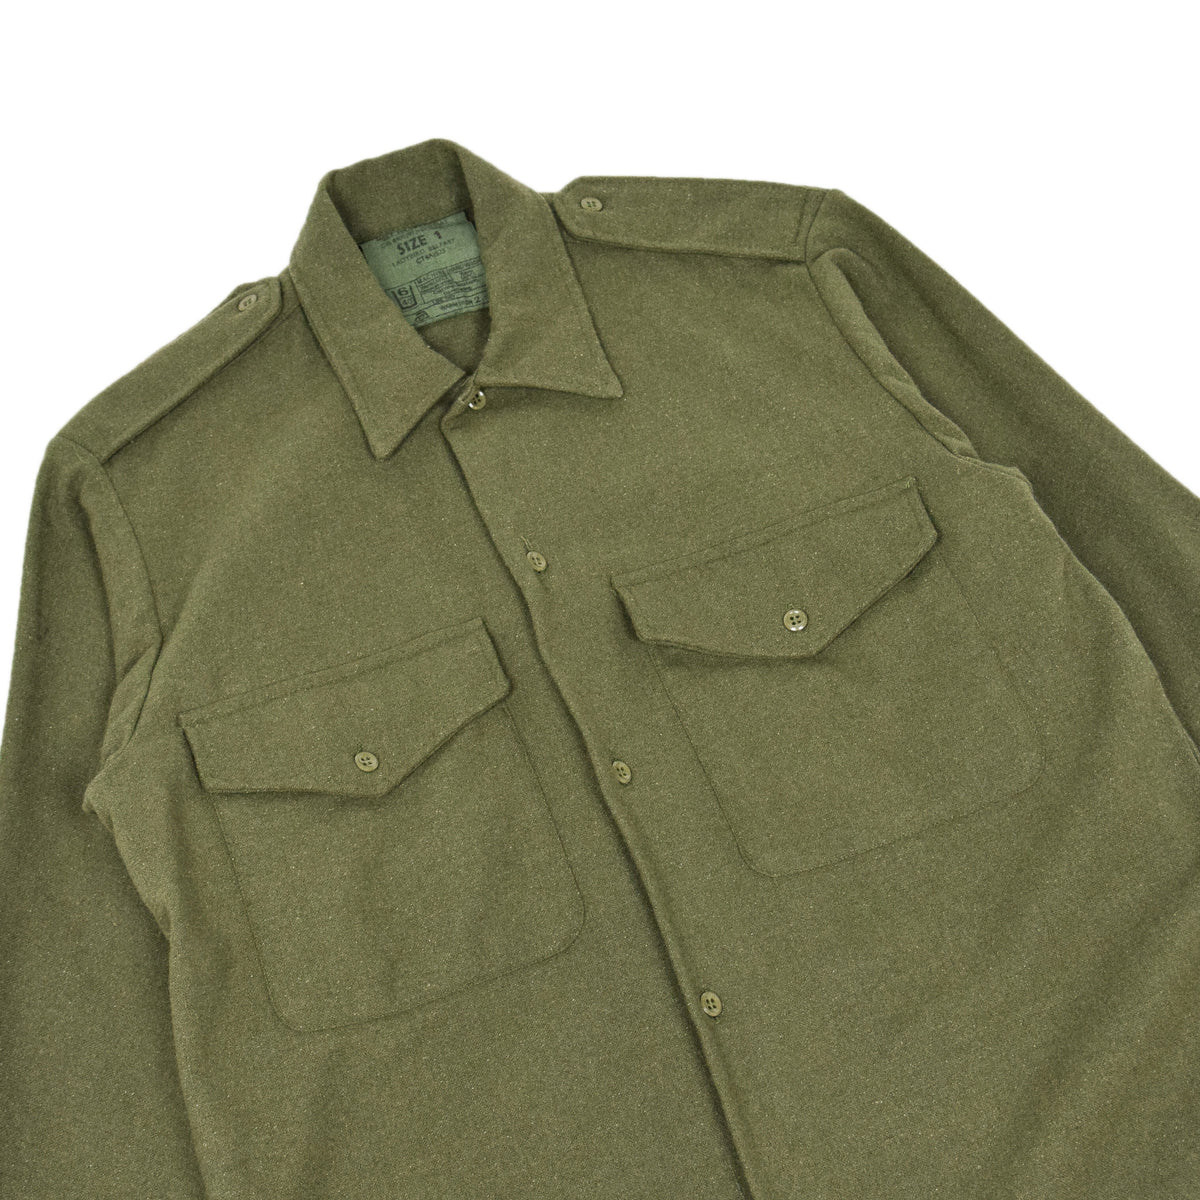 Vintage 80s British Army Mans Combat Wool Shirt Olive Green S CHEST